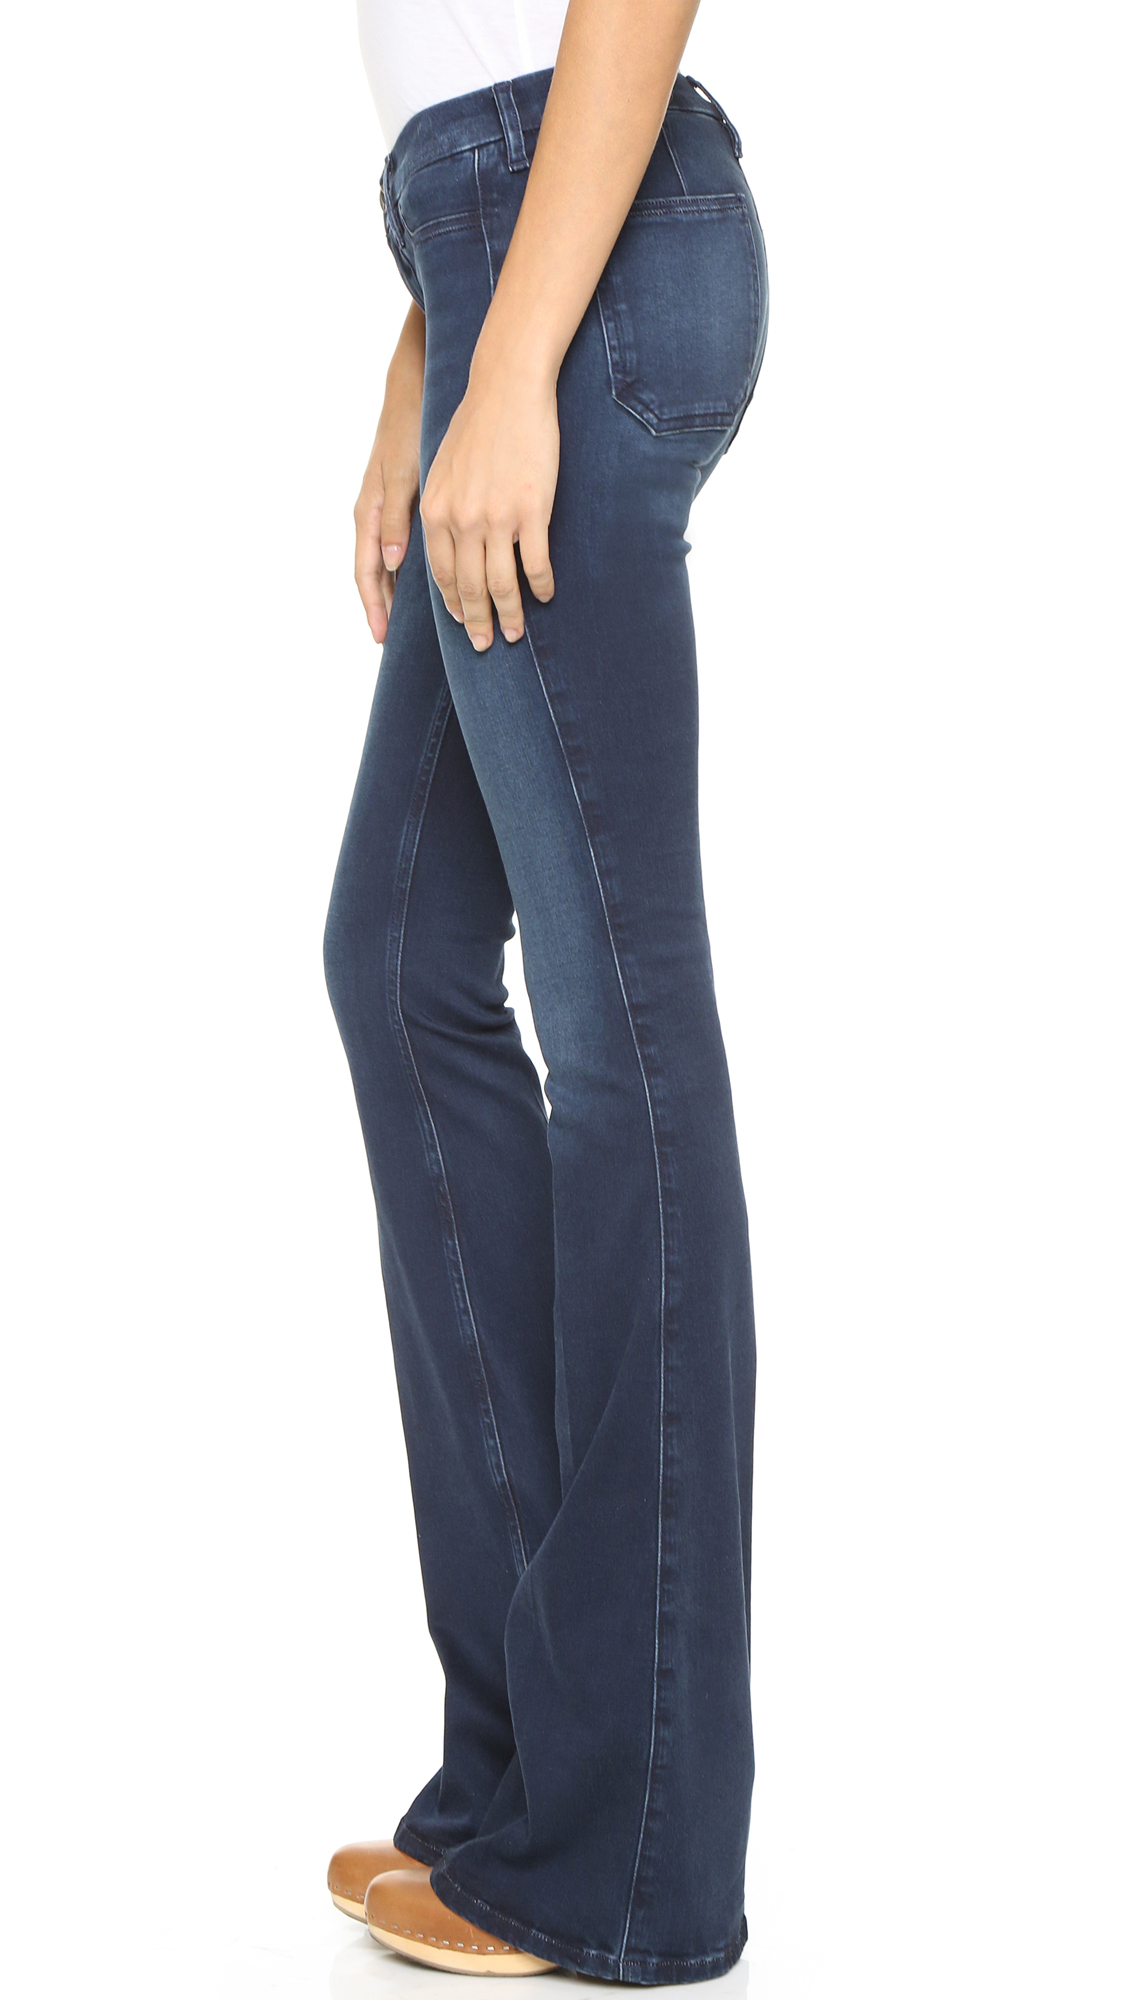 M.i.h Jeans The Skinny Marrakesh Jeans - Garde Wash in Blue